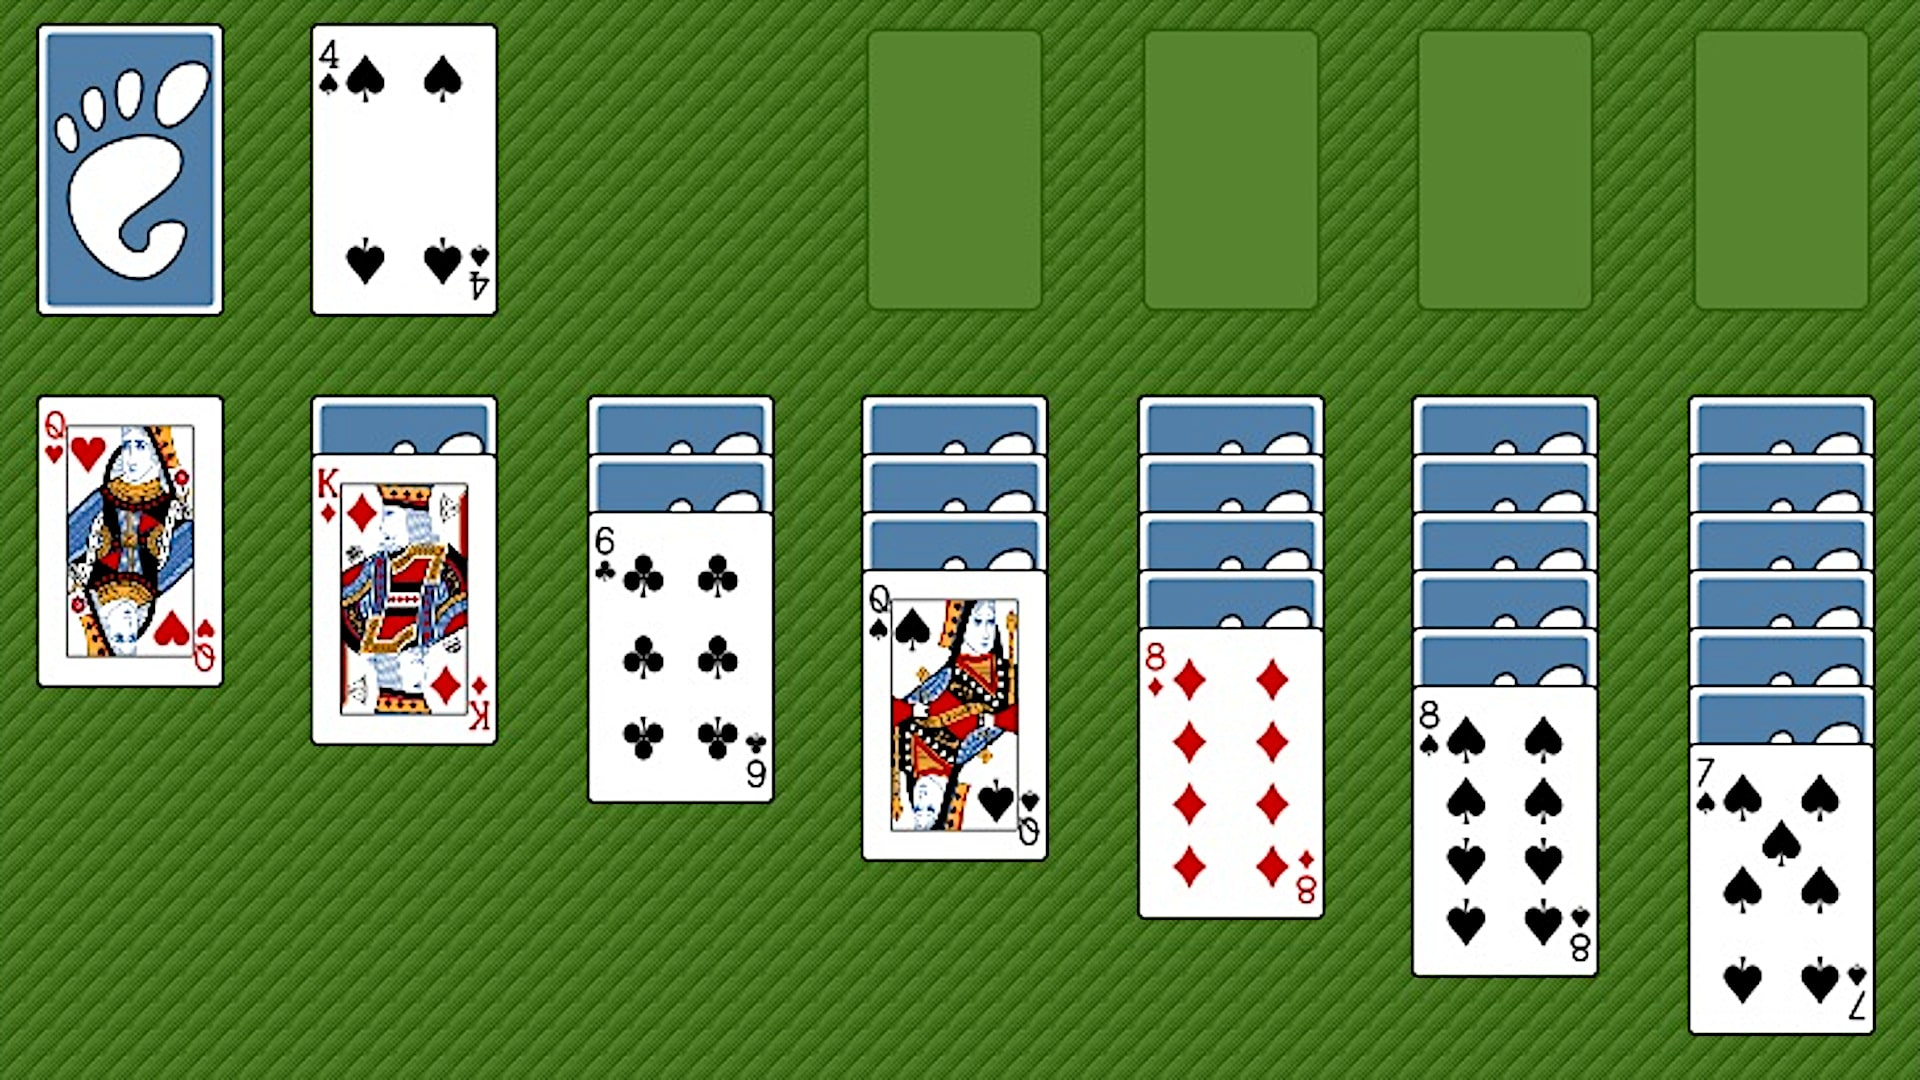 SOLITAIRE Game Rules